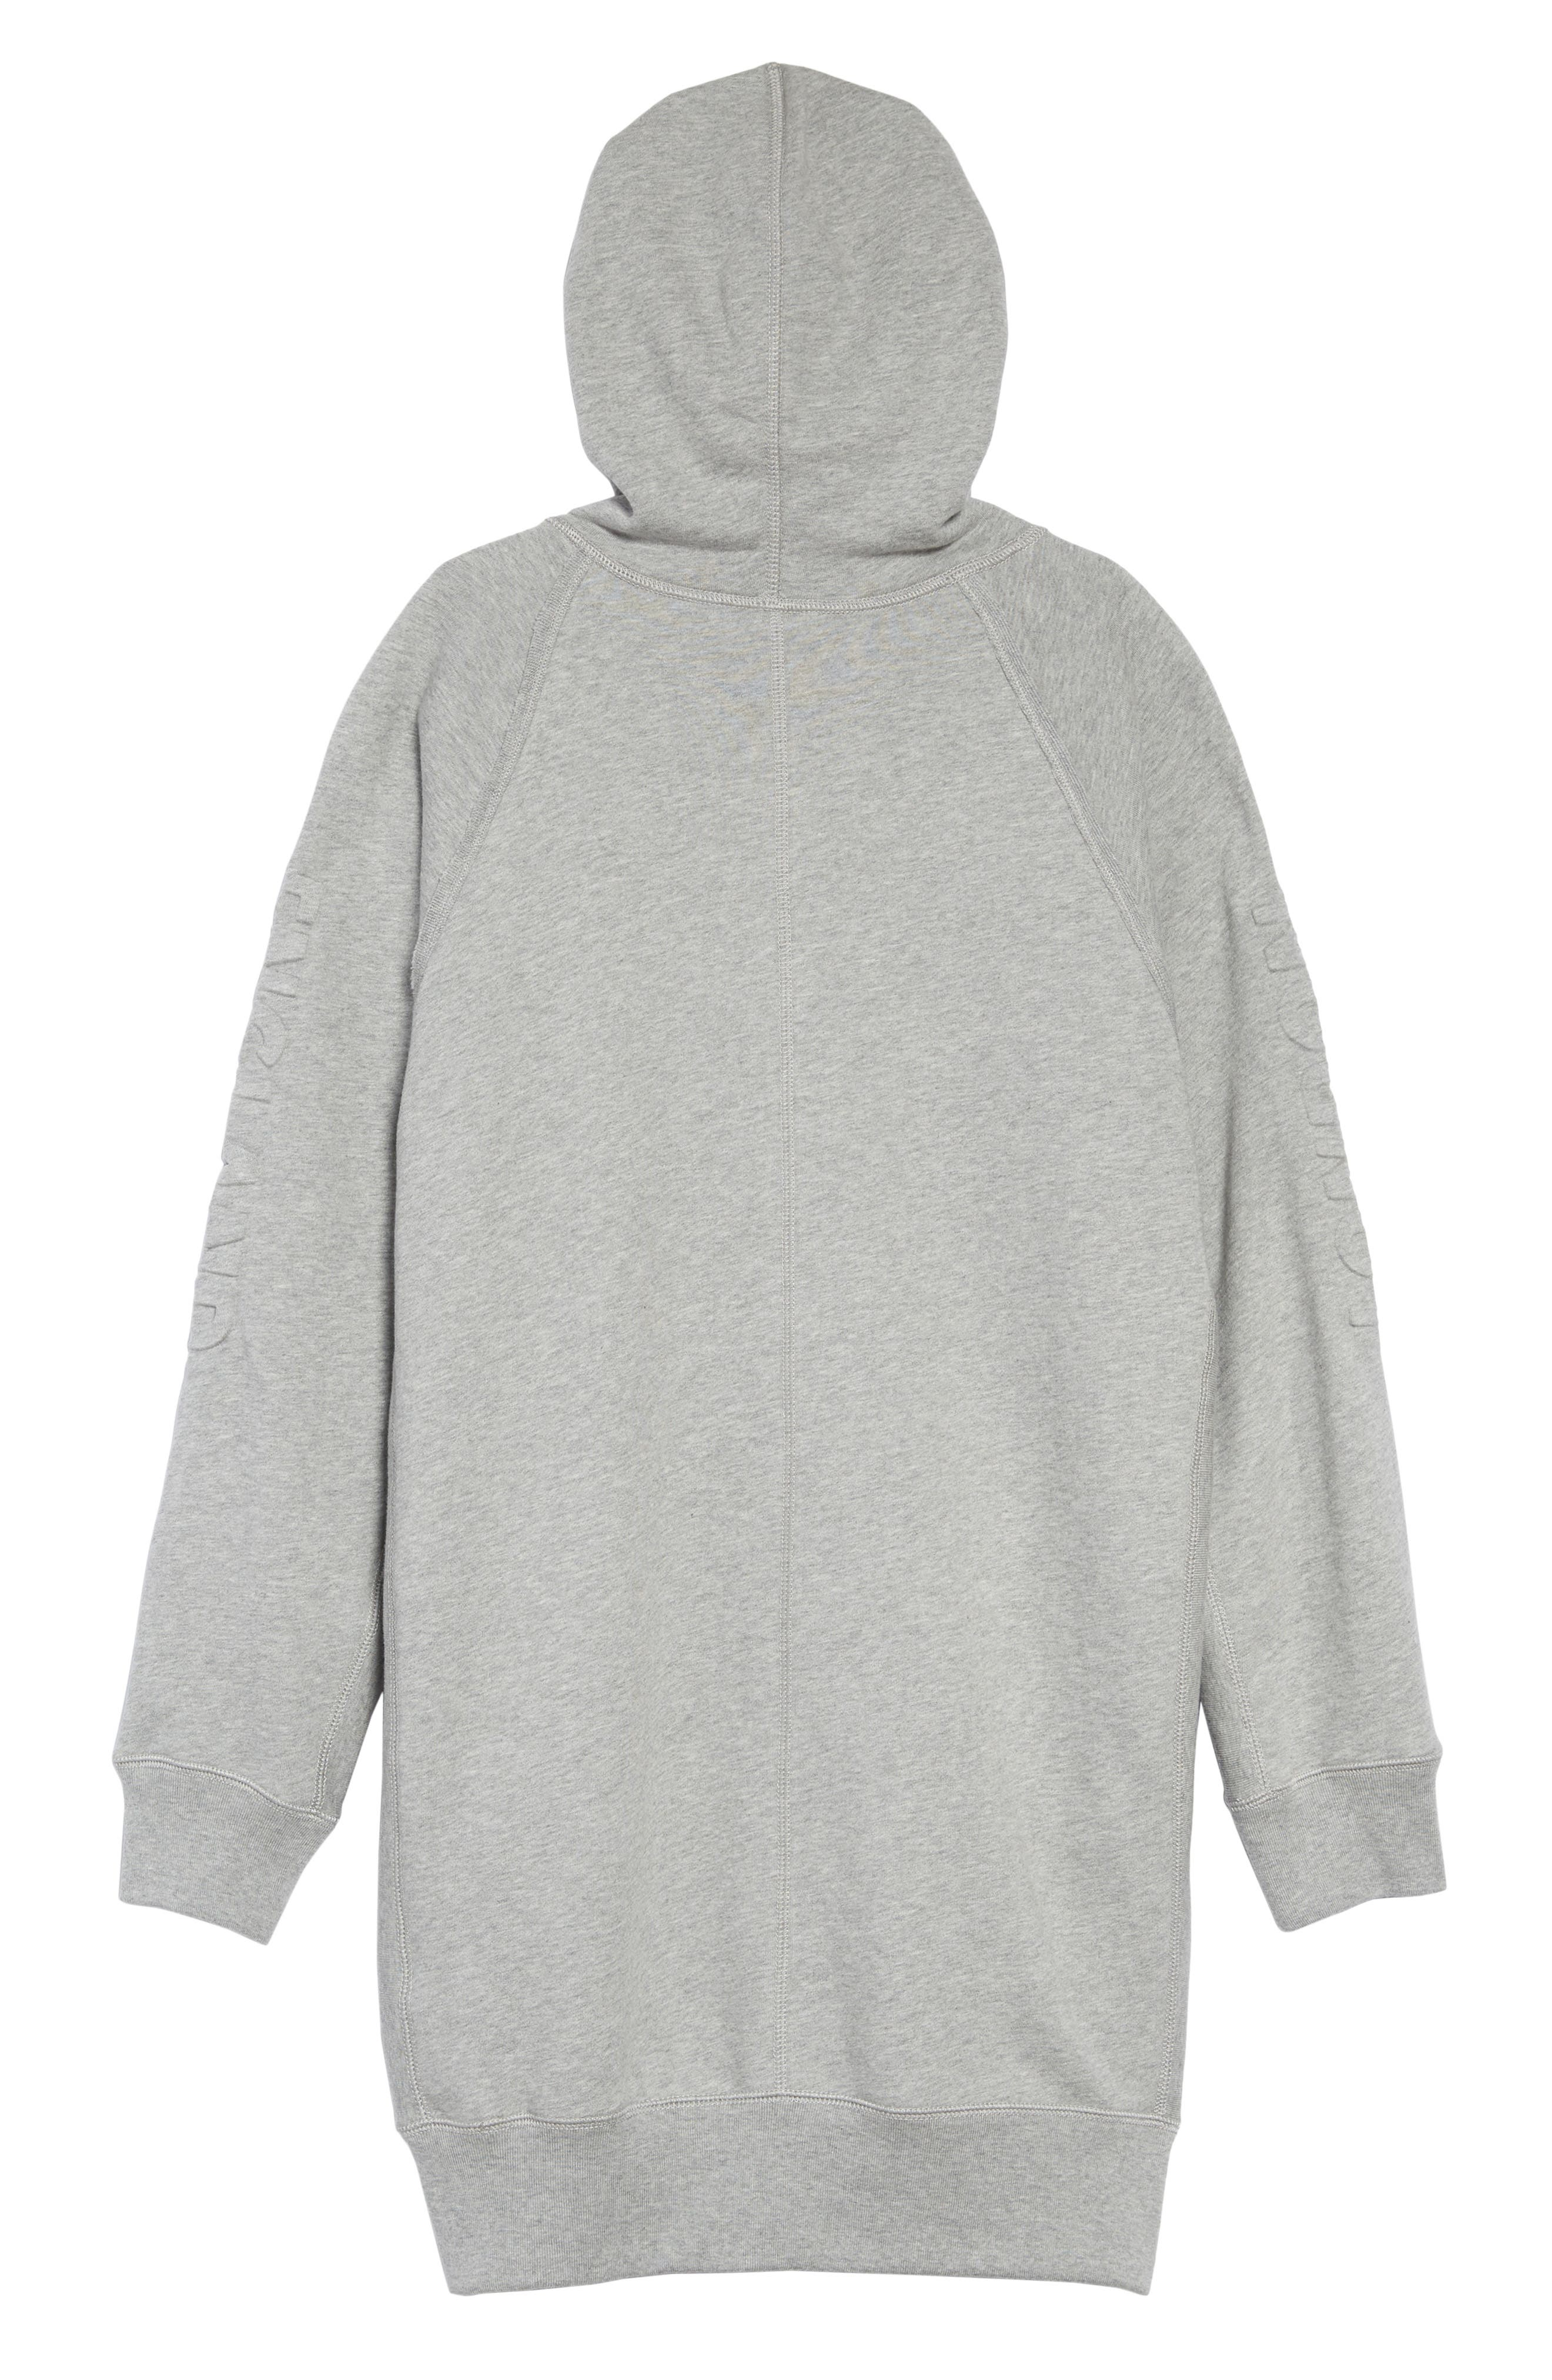 Aurora Logo Sweatshirt Dress,                             Alternate thumbnail 2, color,                             GREY MELANGE